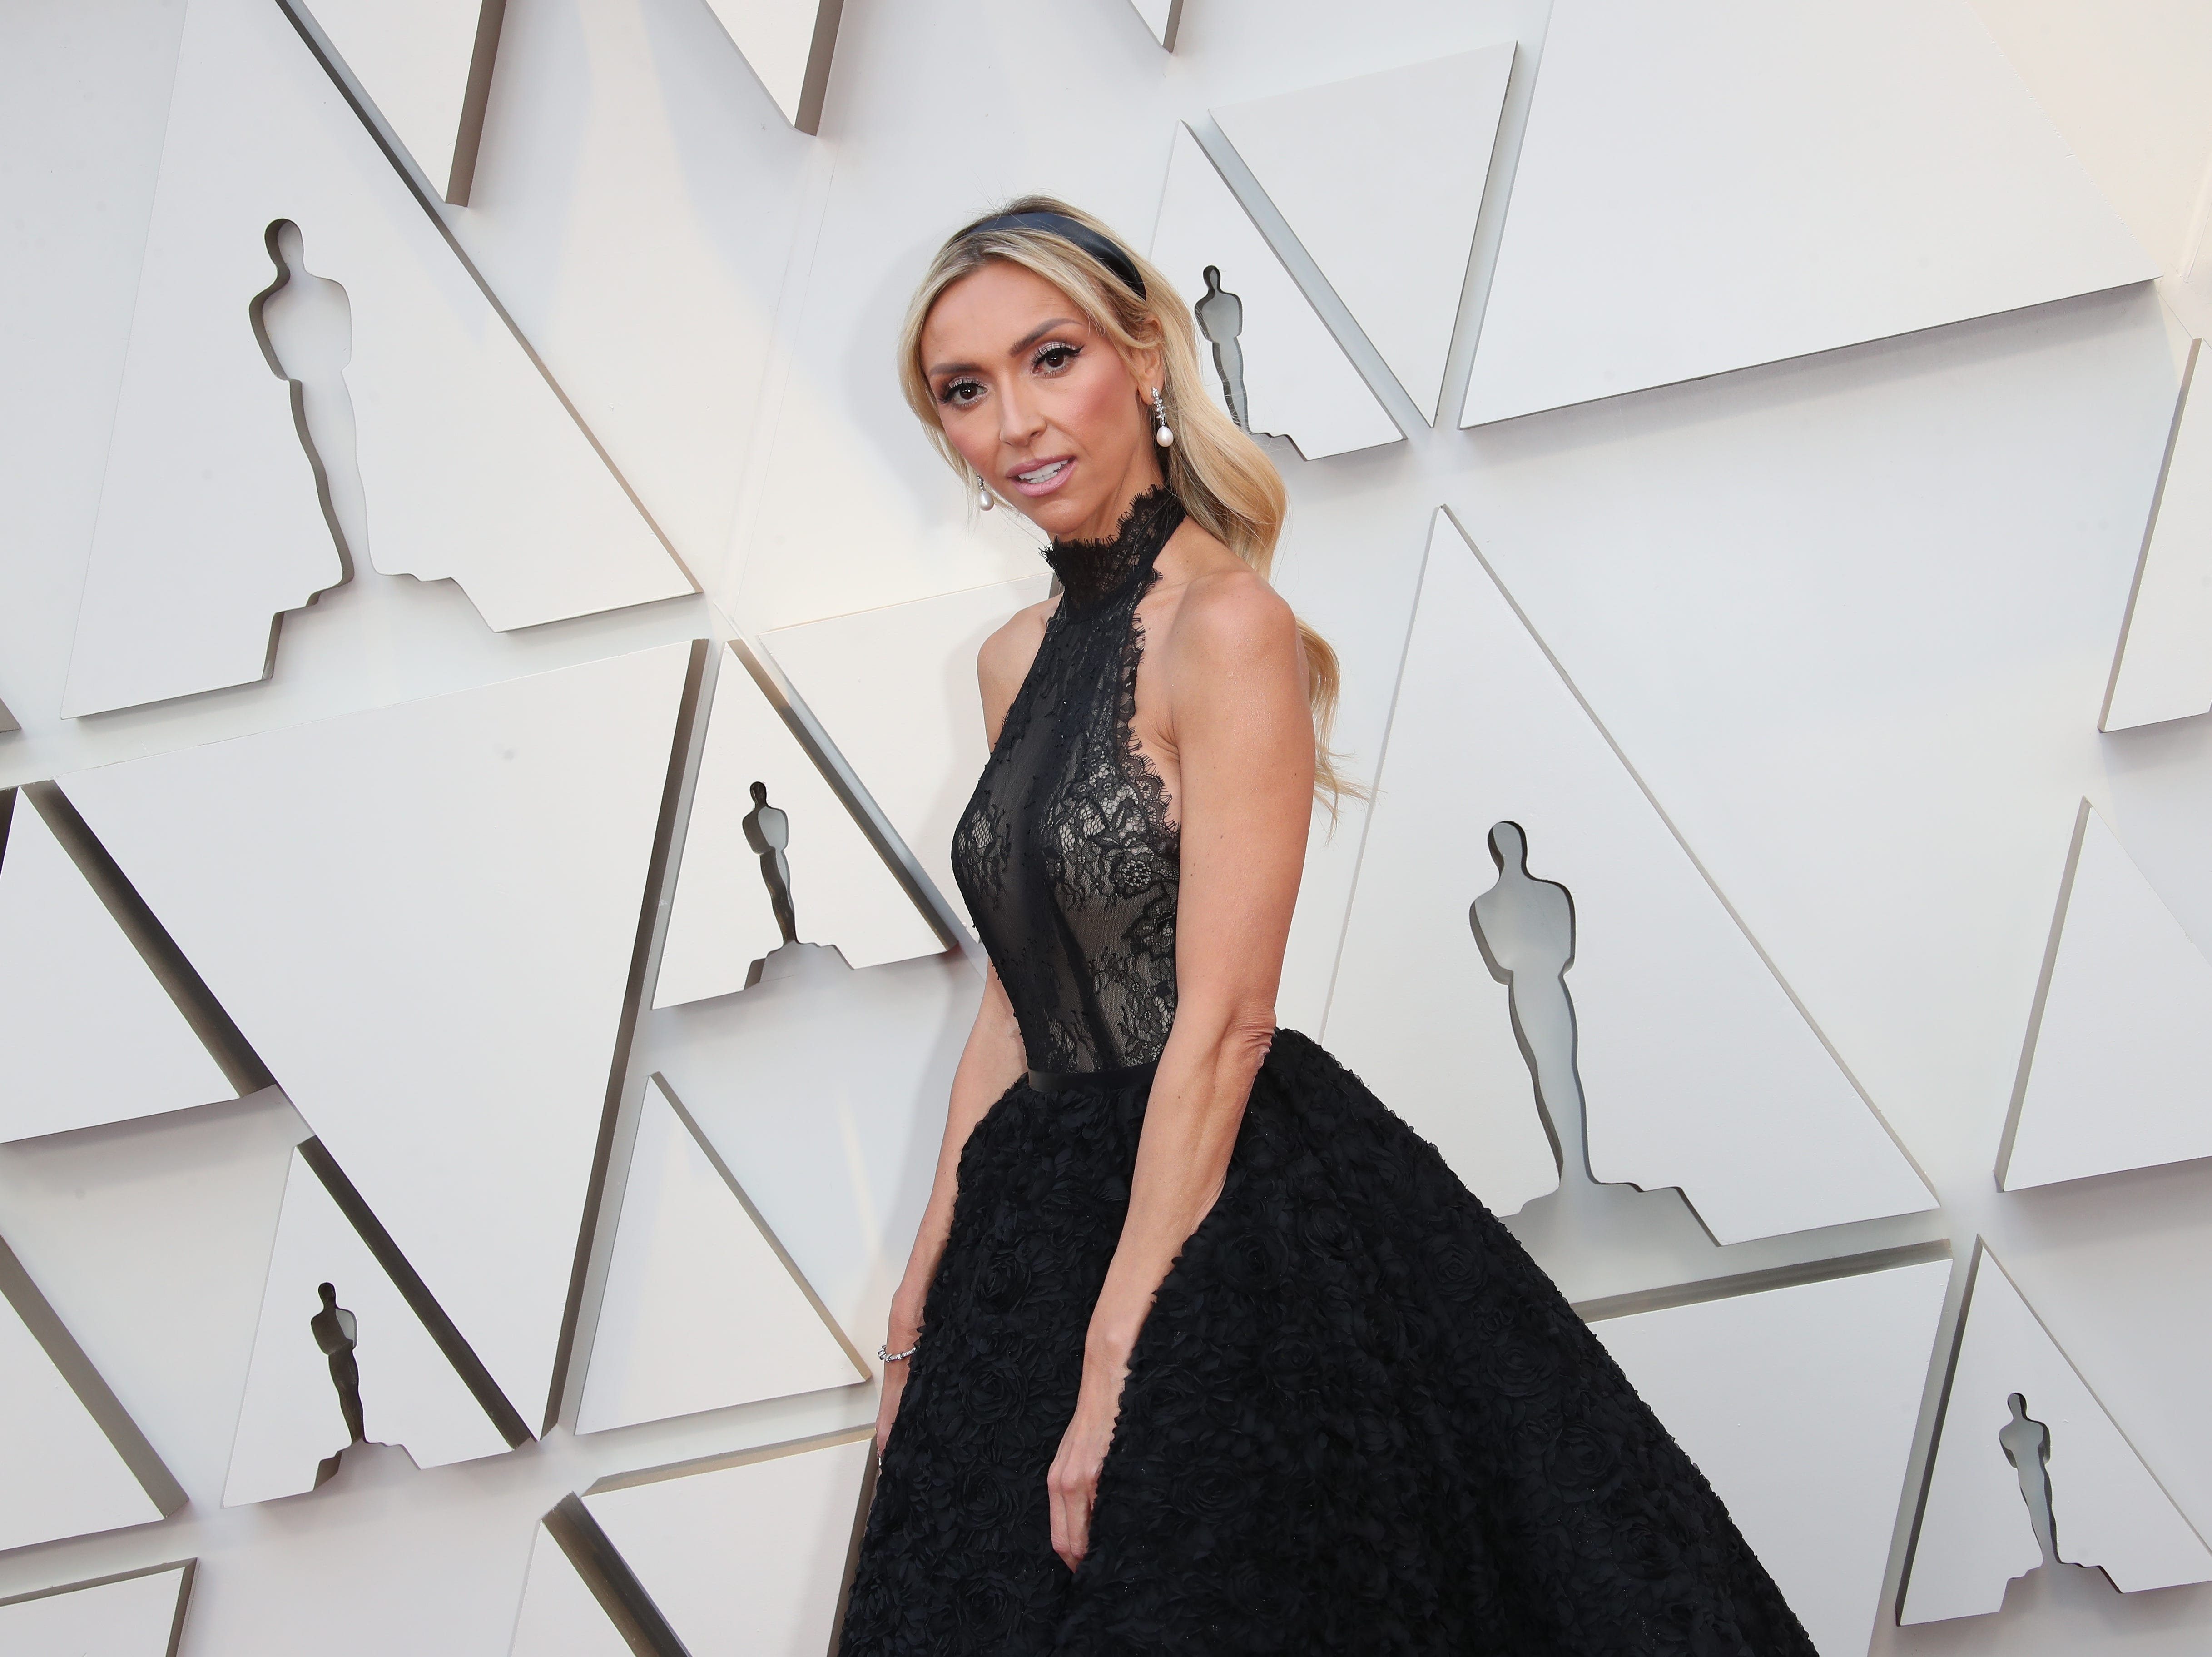 February 24, 2019; Los Angeles, CA, USA; Giuliana Rancic arrives at the 91st Academy Awards at the Dolby Theatre. Mandatory Credit: Dan MacMedan-USA TODAY NETWORK (Via OlyDrop)